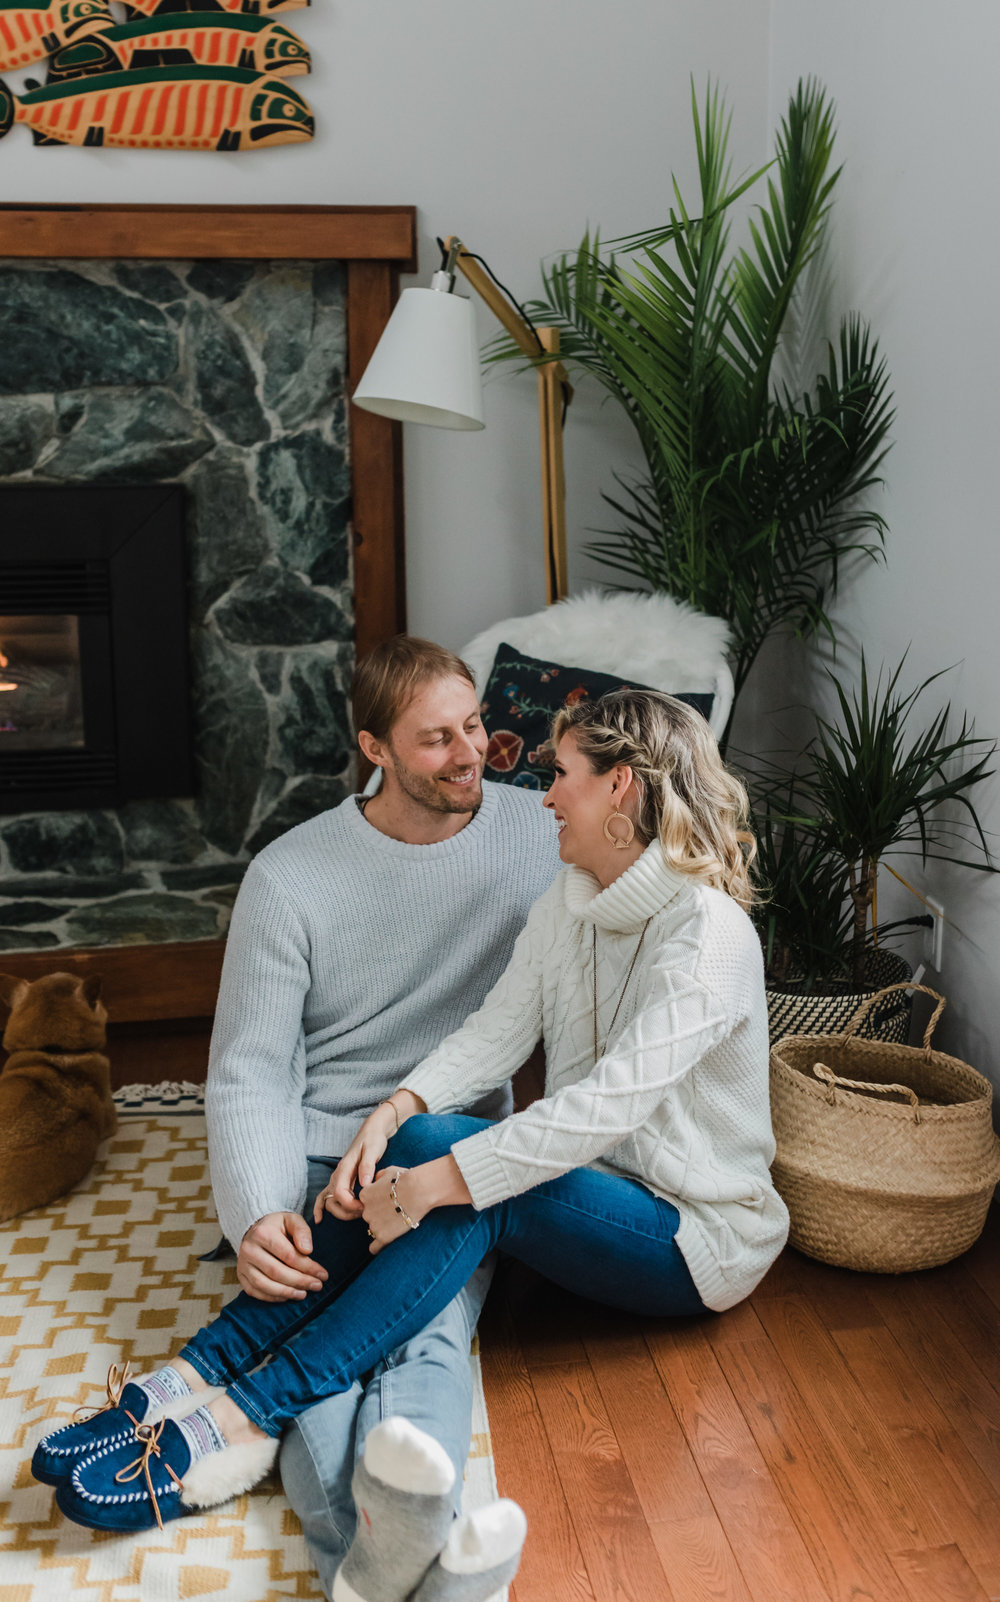 Home Engagement Session Photos - Squamish Wedding Photographer - Squamish Engagement Photos -  Vancouver Wedding Photographer & Videographer - Sunshine Coast Wedding Photos - Sunshine Coast Wedding Photographer - Jennifer Picard Photography - 1A5A1161.jpg